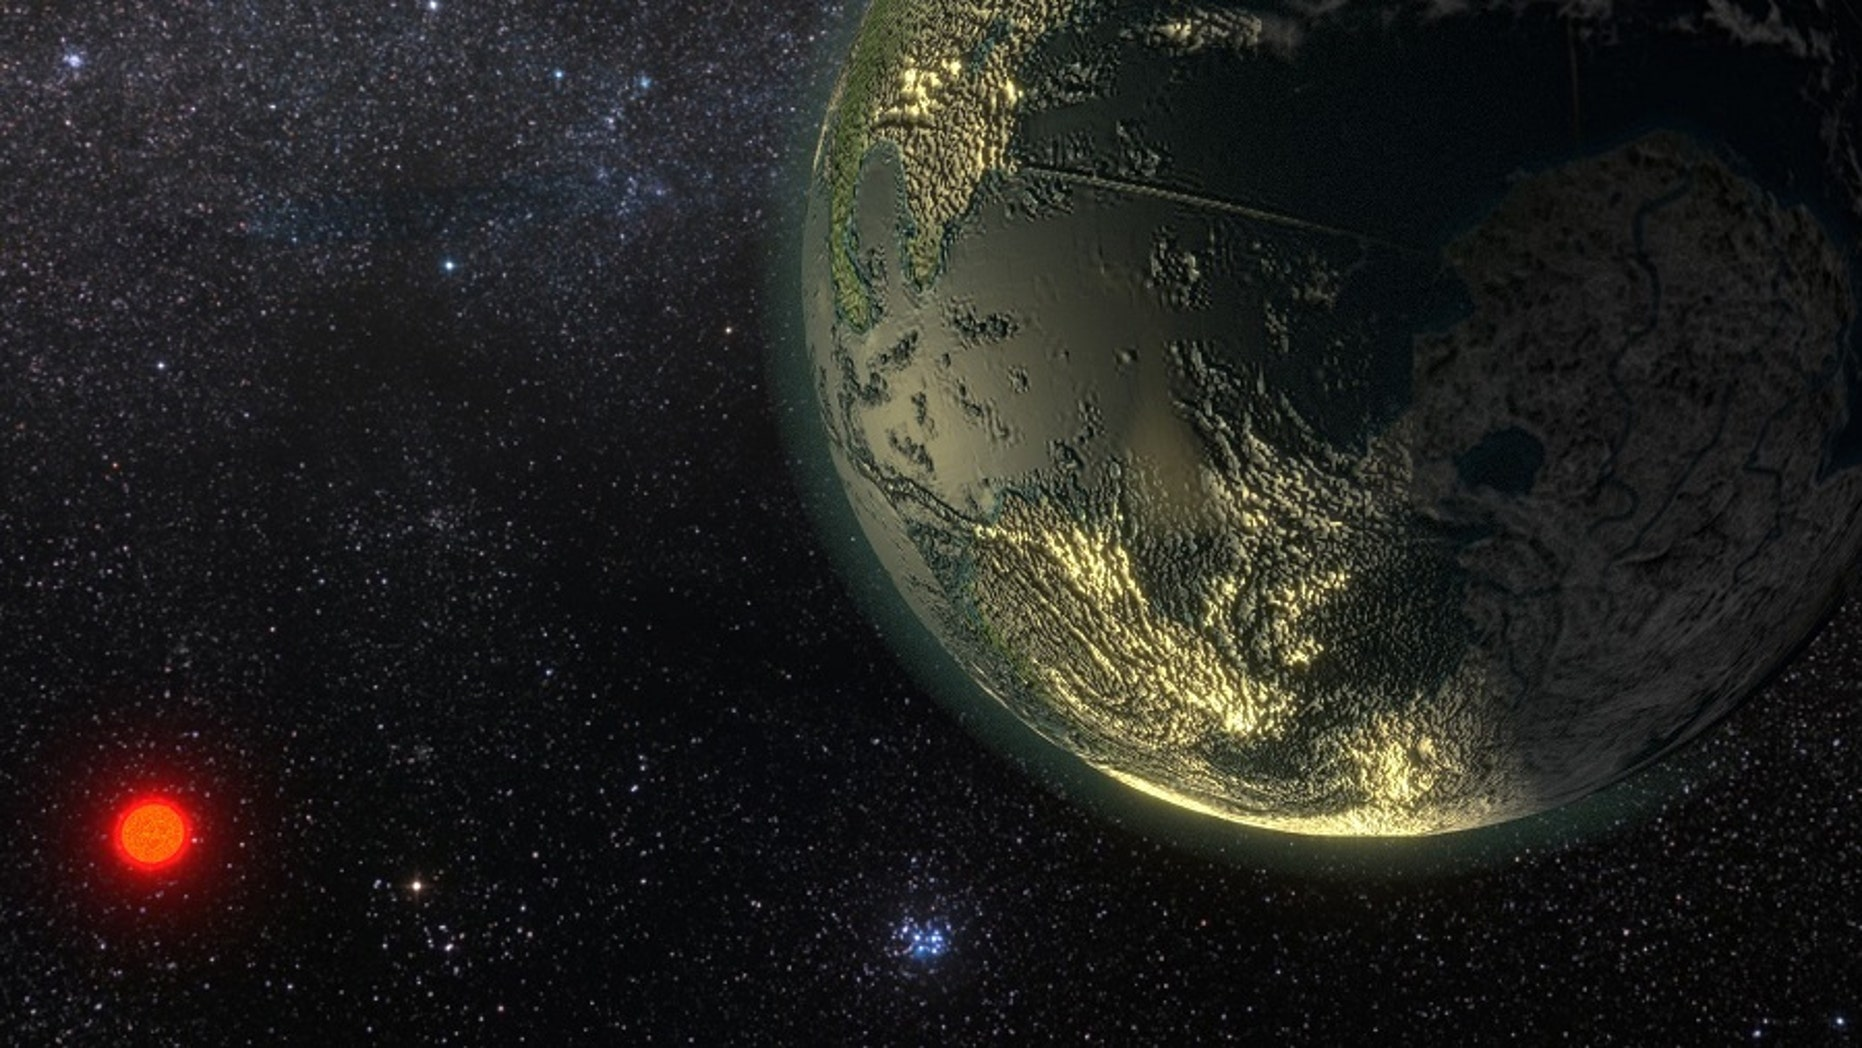 Artist's concept of the probable planet orbiting a star called Gliese 411, or GJ 411. (Courtesy of Ricardo Ramirez)